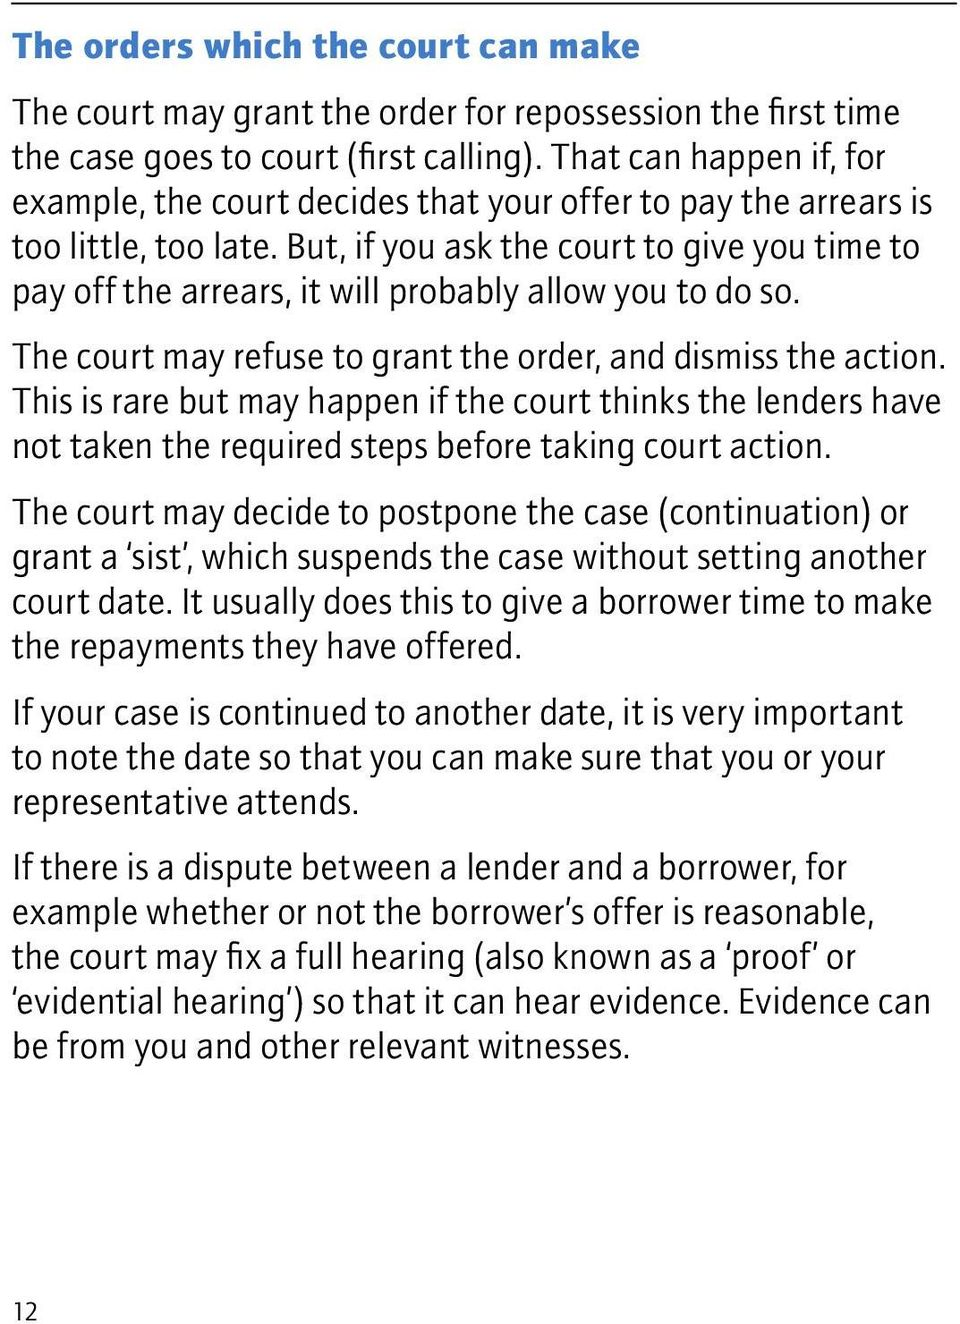 But, if you ask the court to give you time to pay off the arrears, it will probably allow you to do so. The court may refuse to grant the order, and dismiss the action.